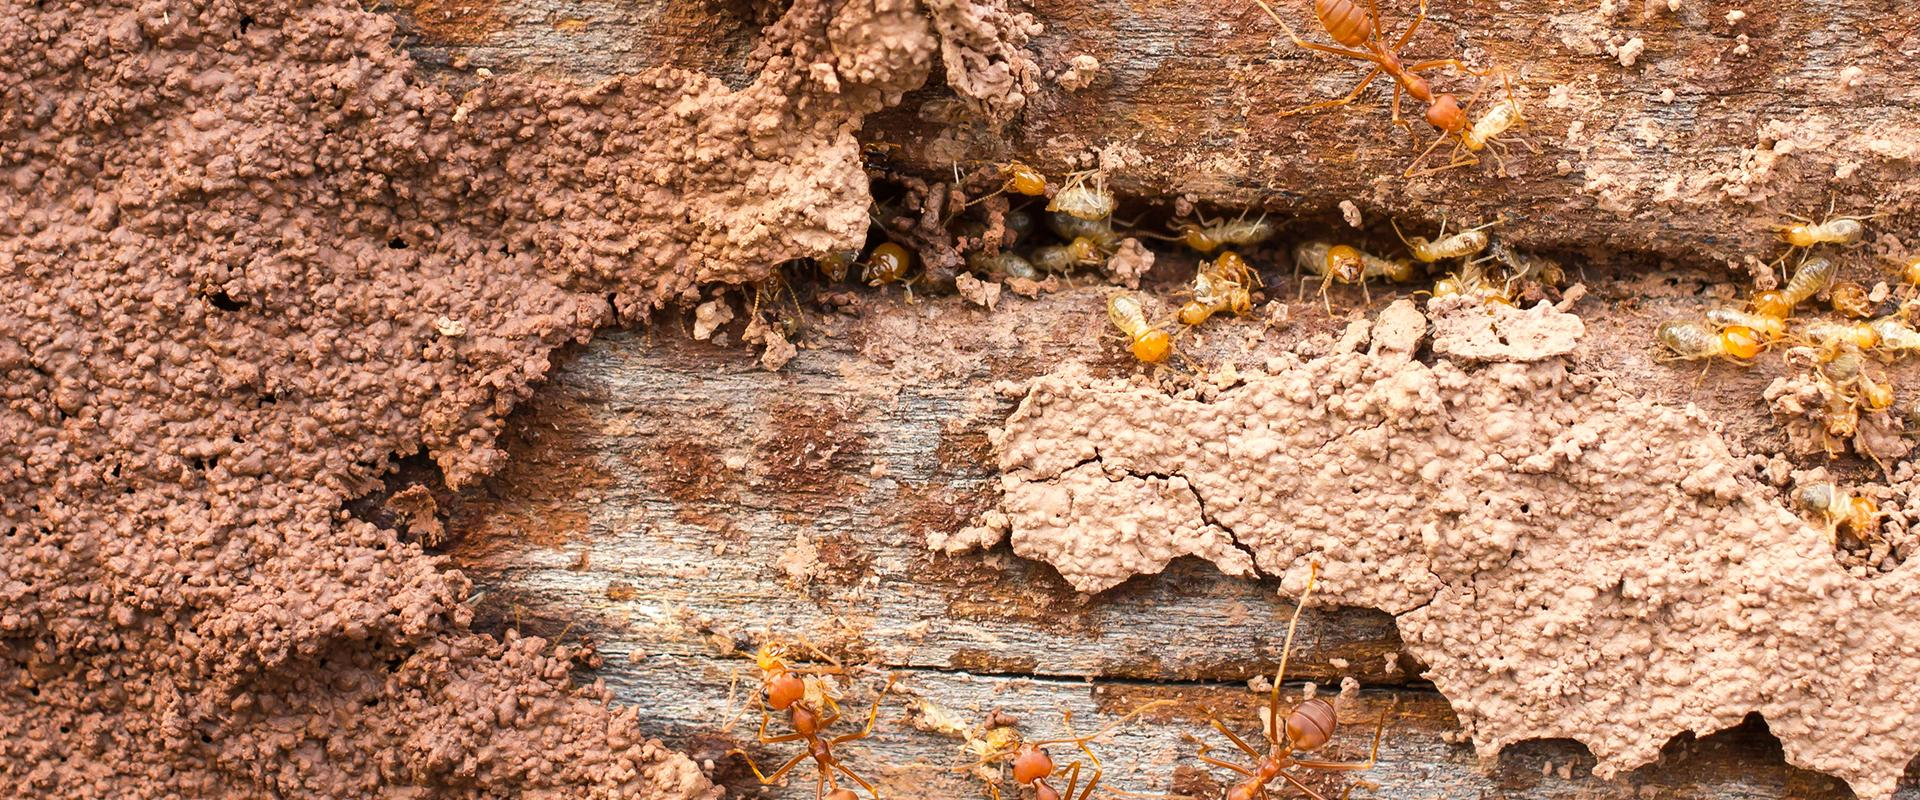 termites in a mound in tarrant county texas